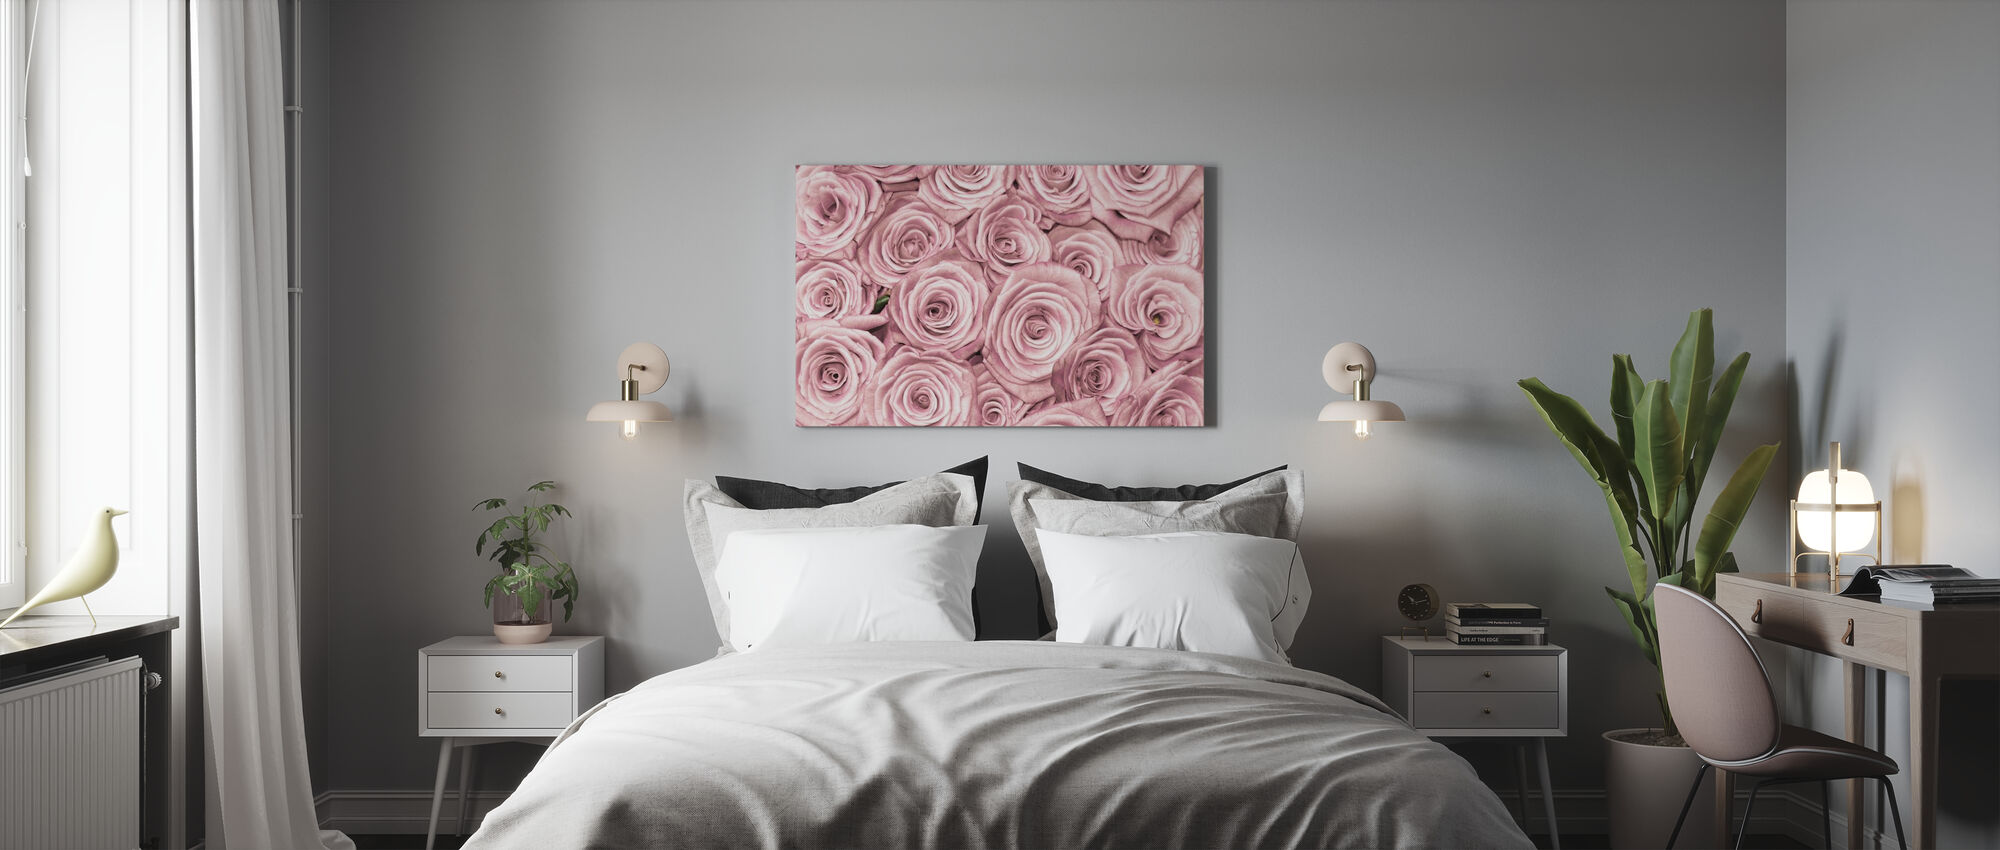 Wall of Roses - Canvas print - Bedroom